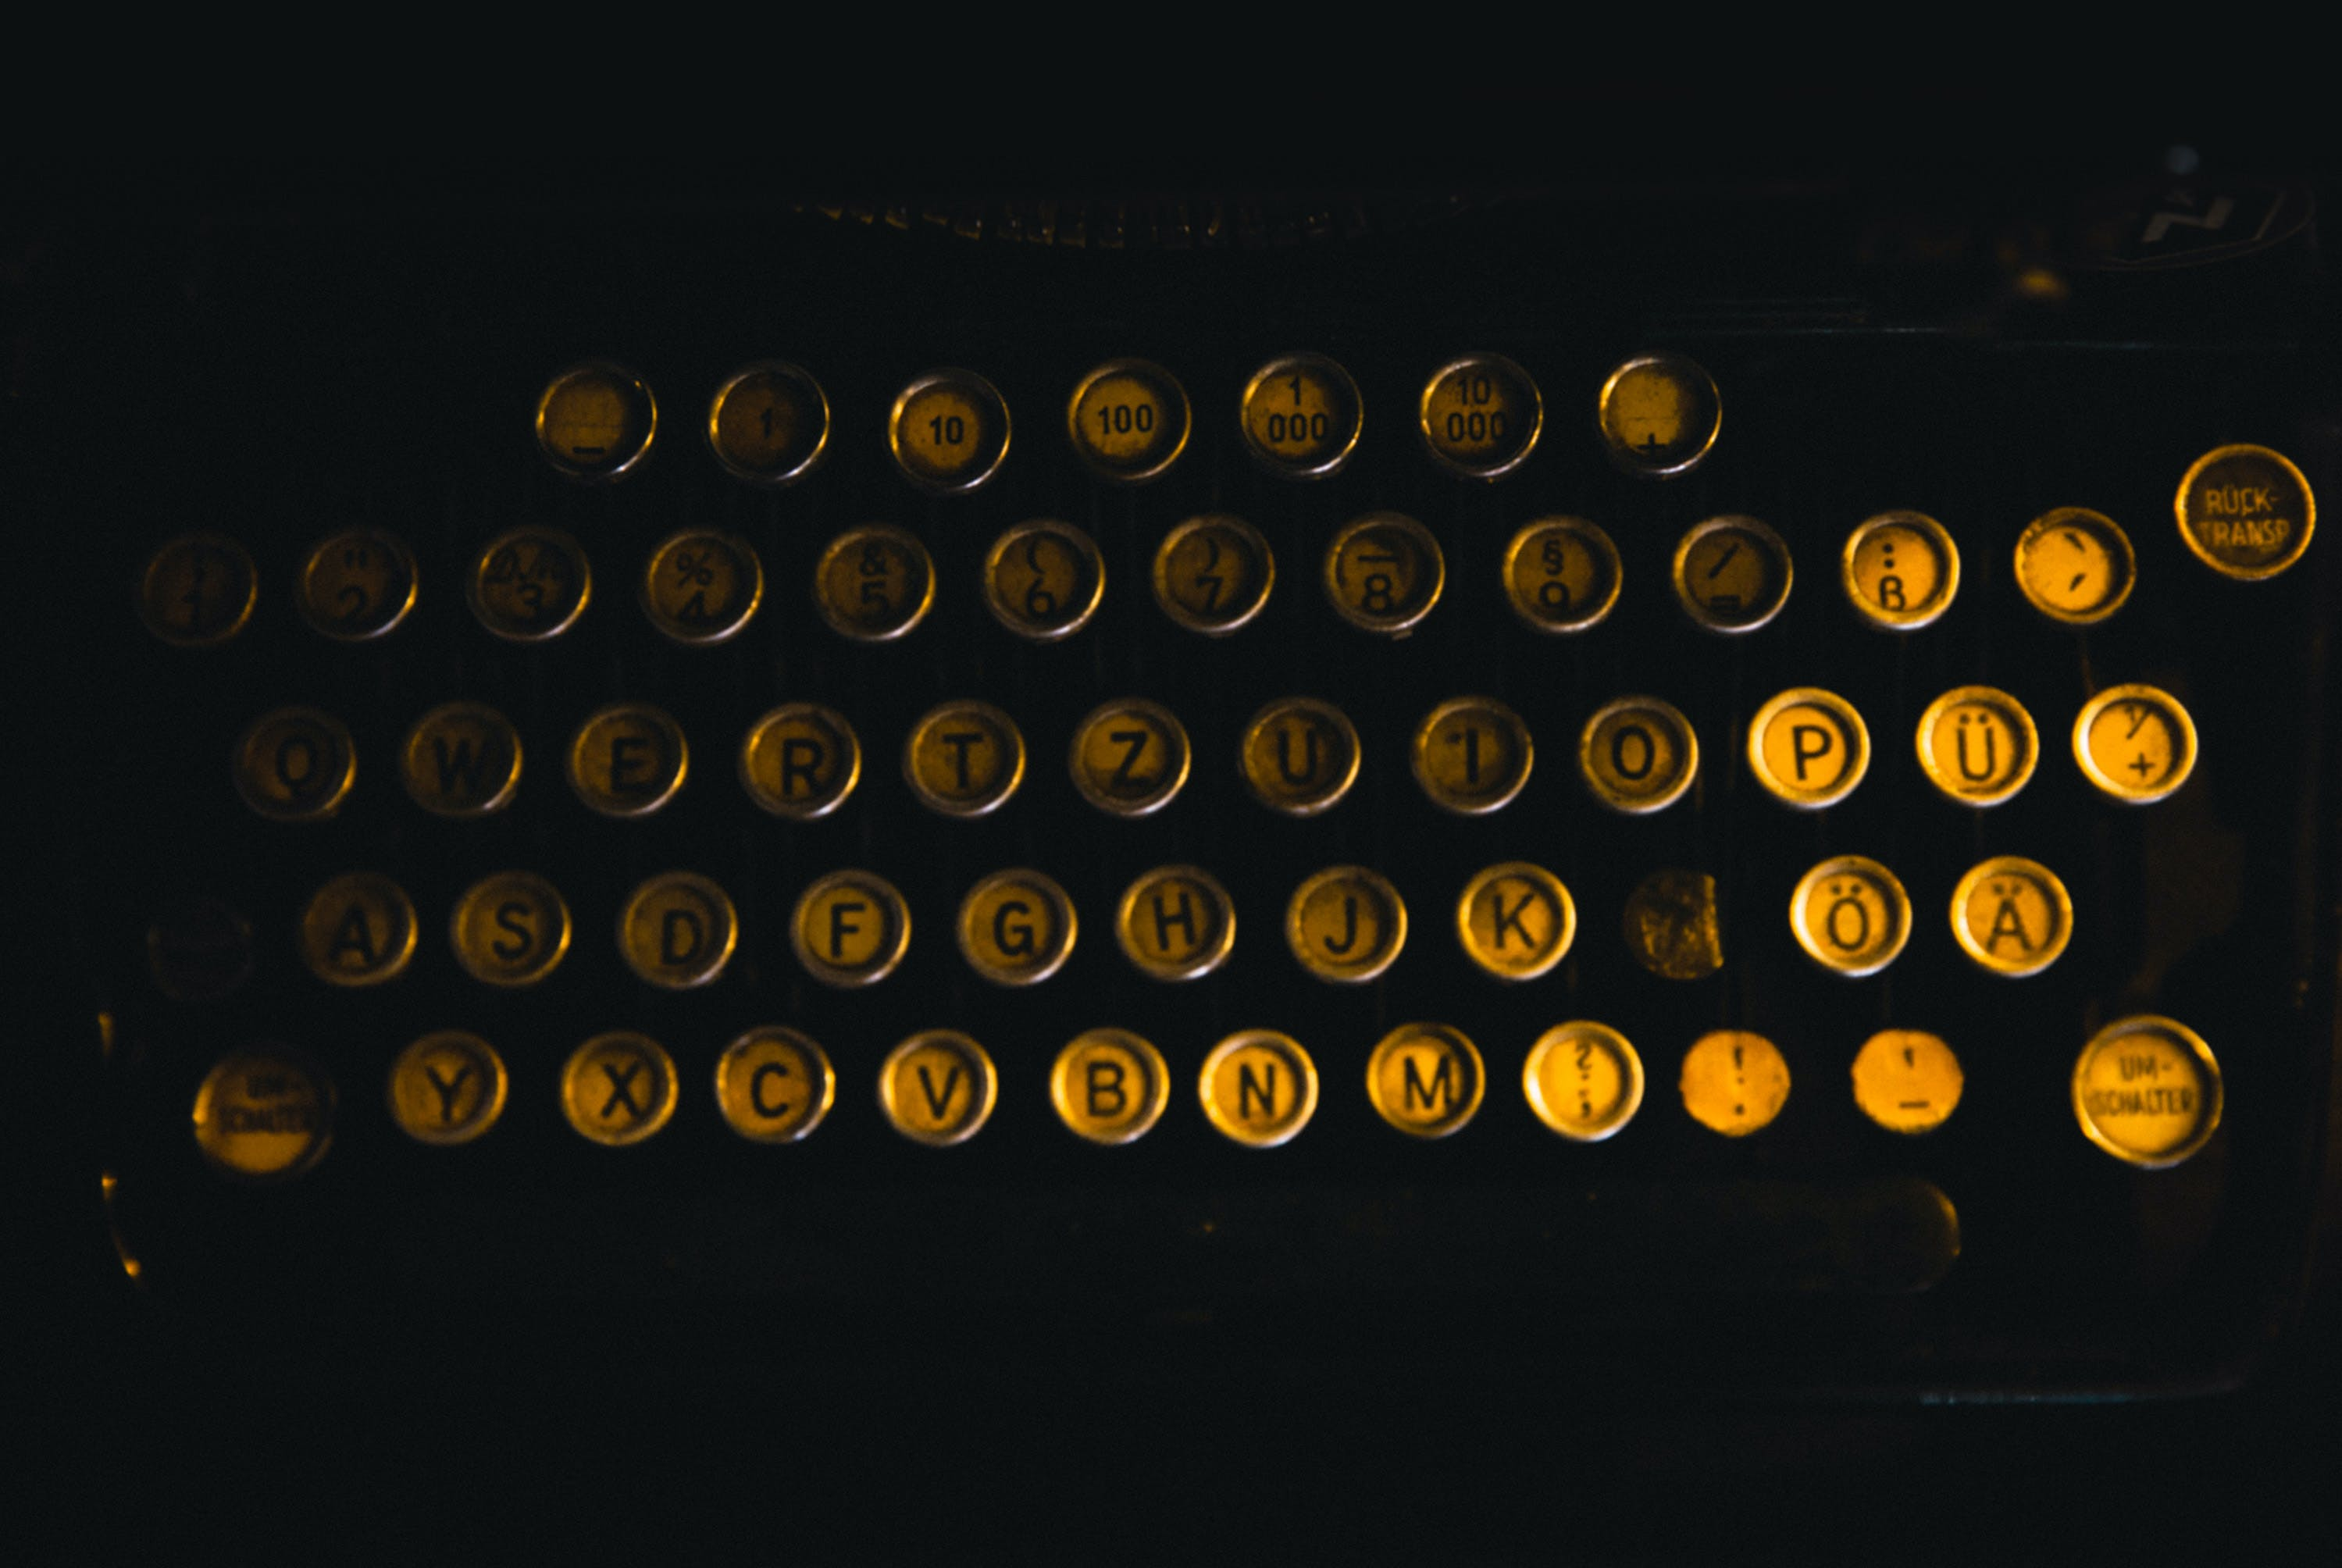 Flat Lay Photography of Brass-colored Typewriter